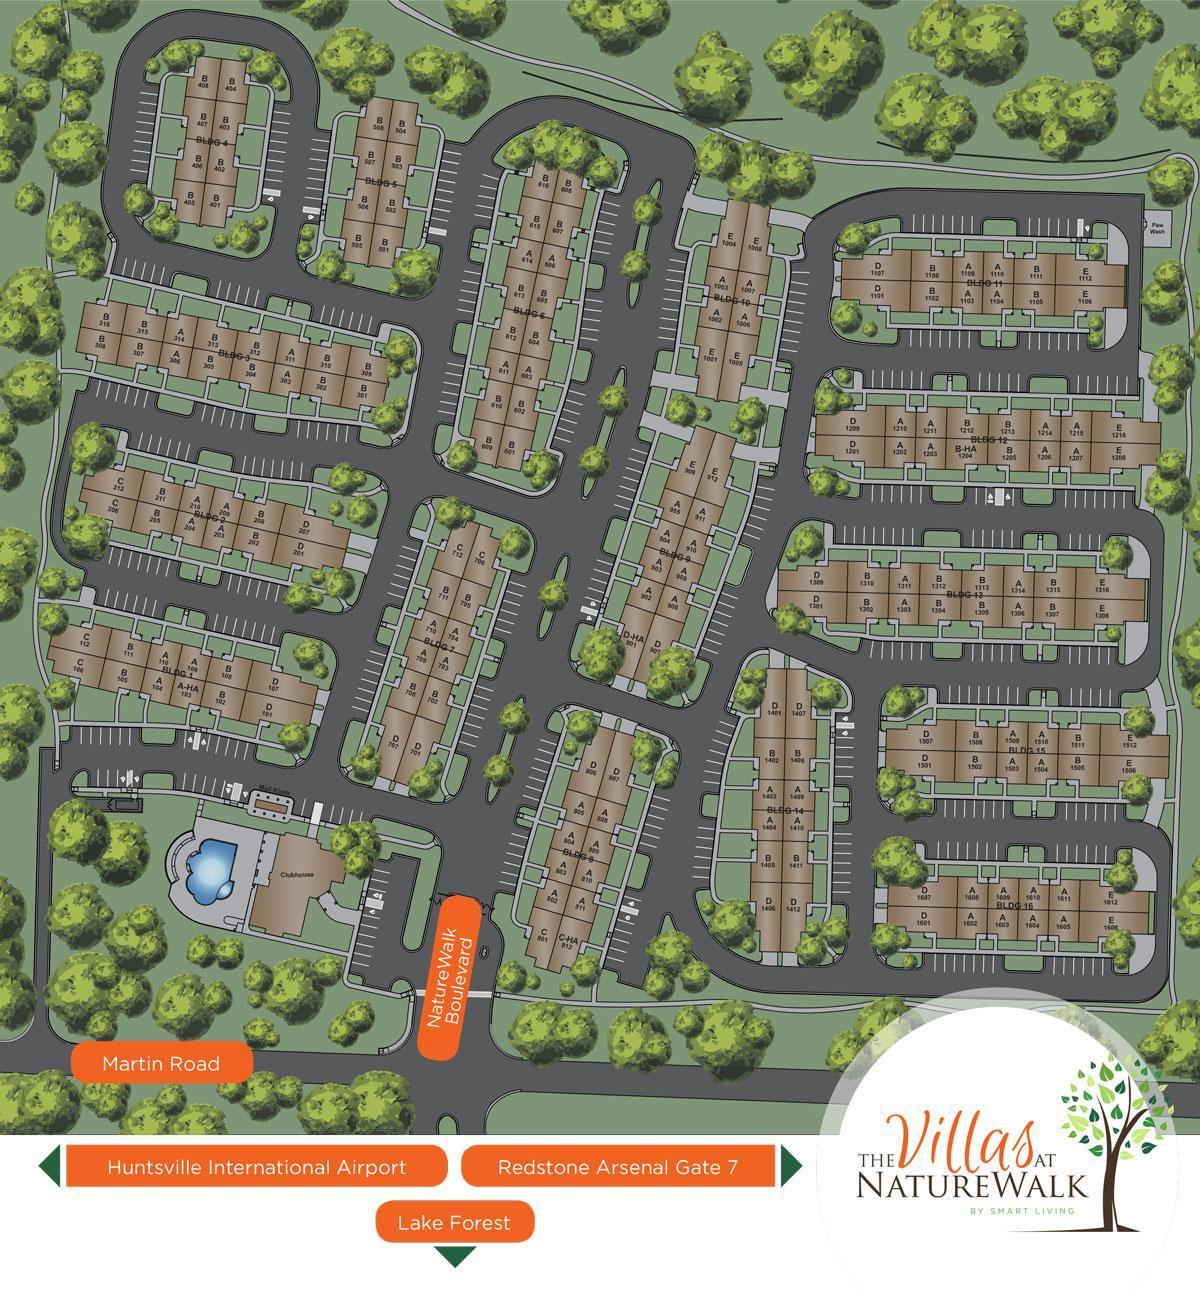 The Villas at Nature Walk Site Plan